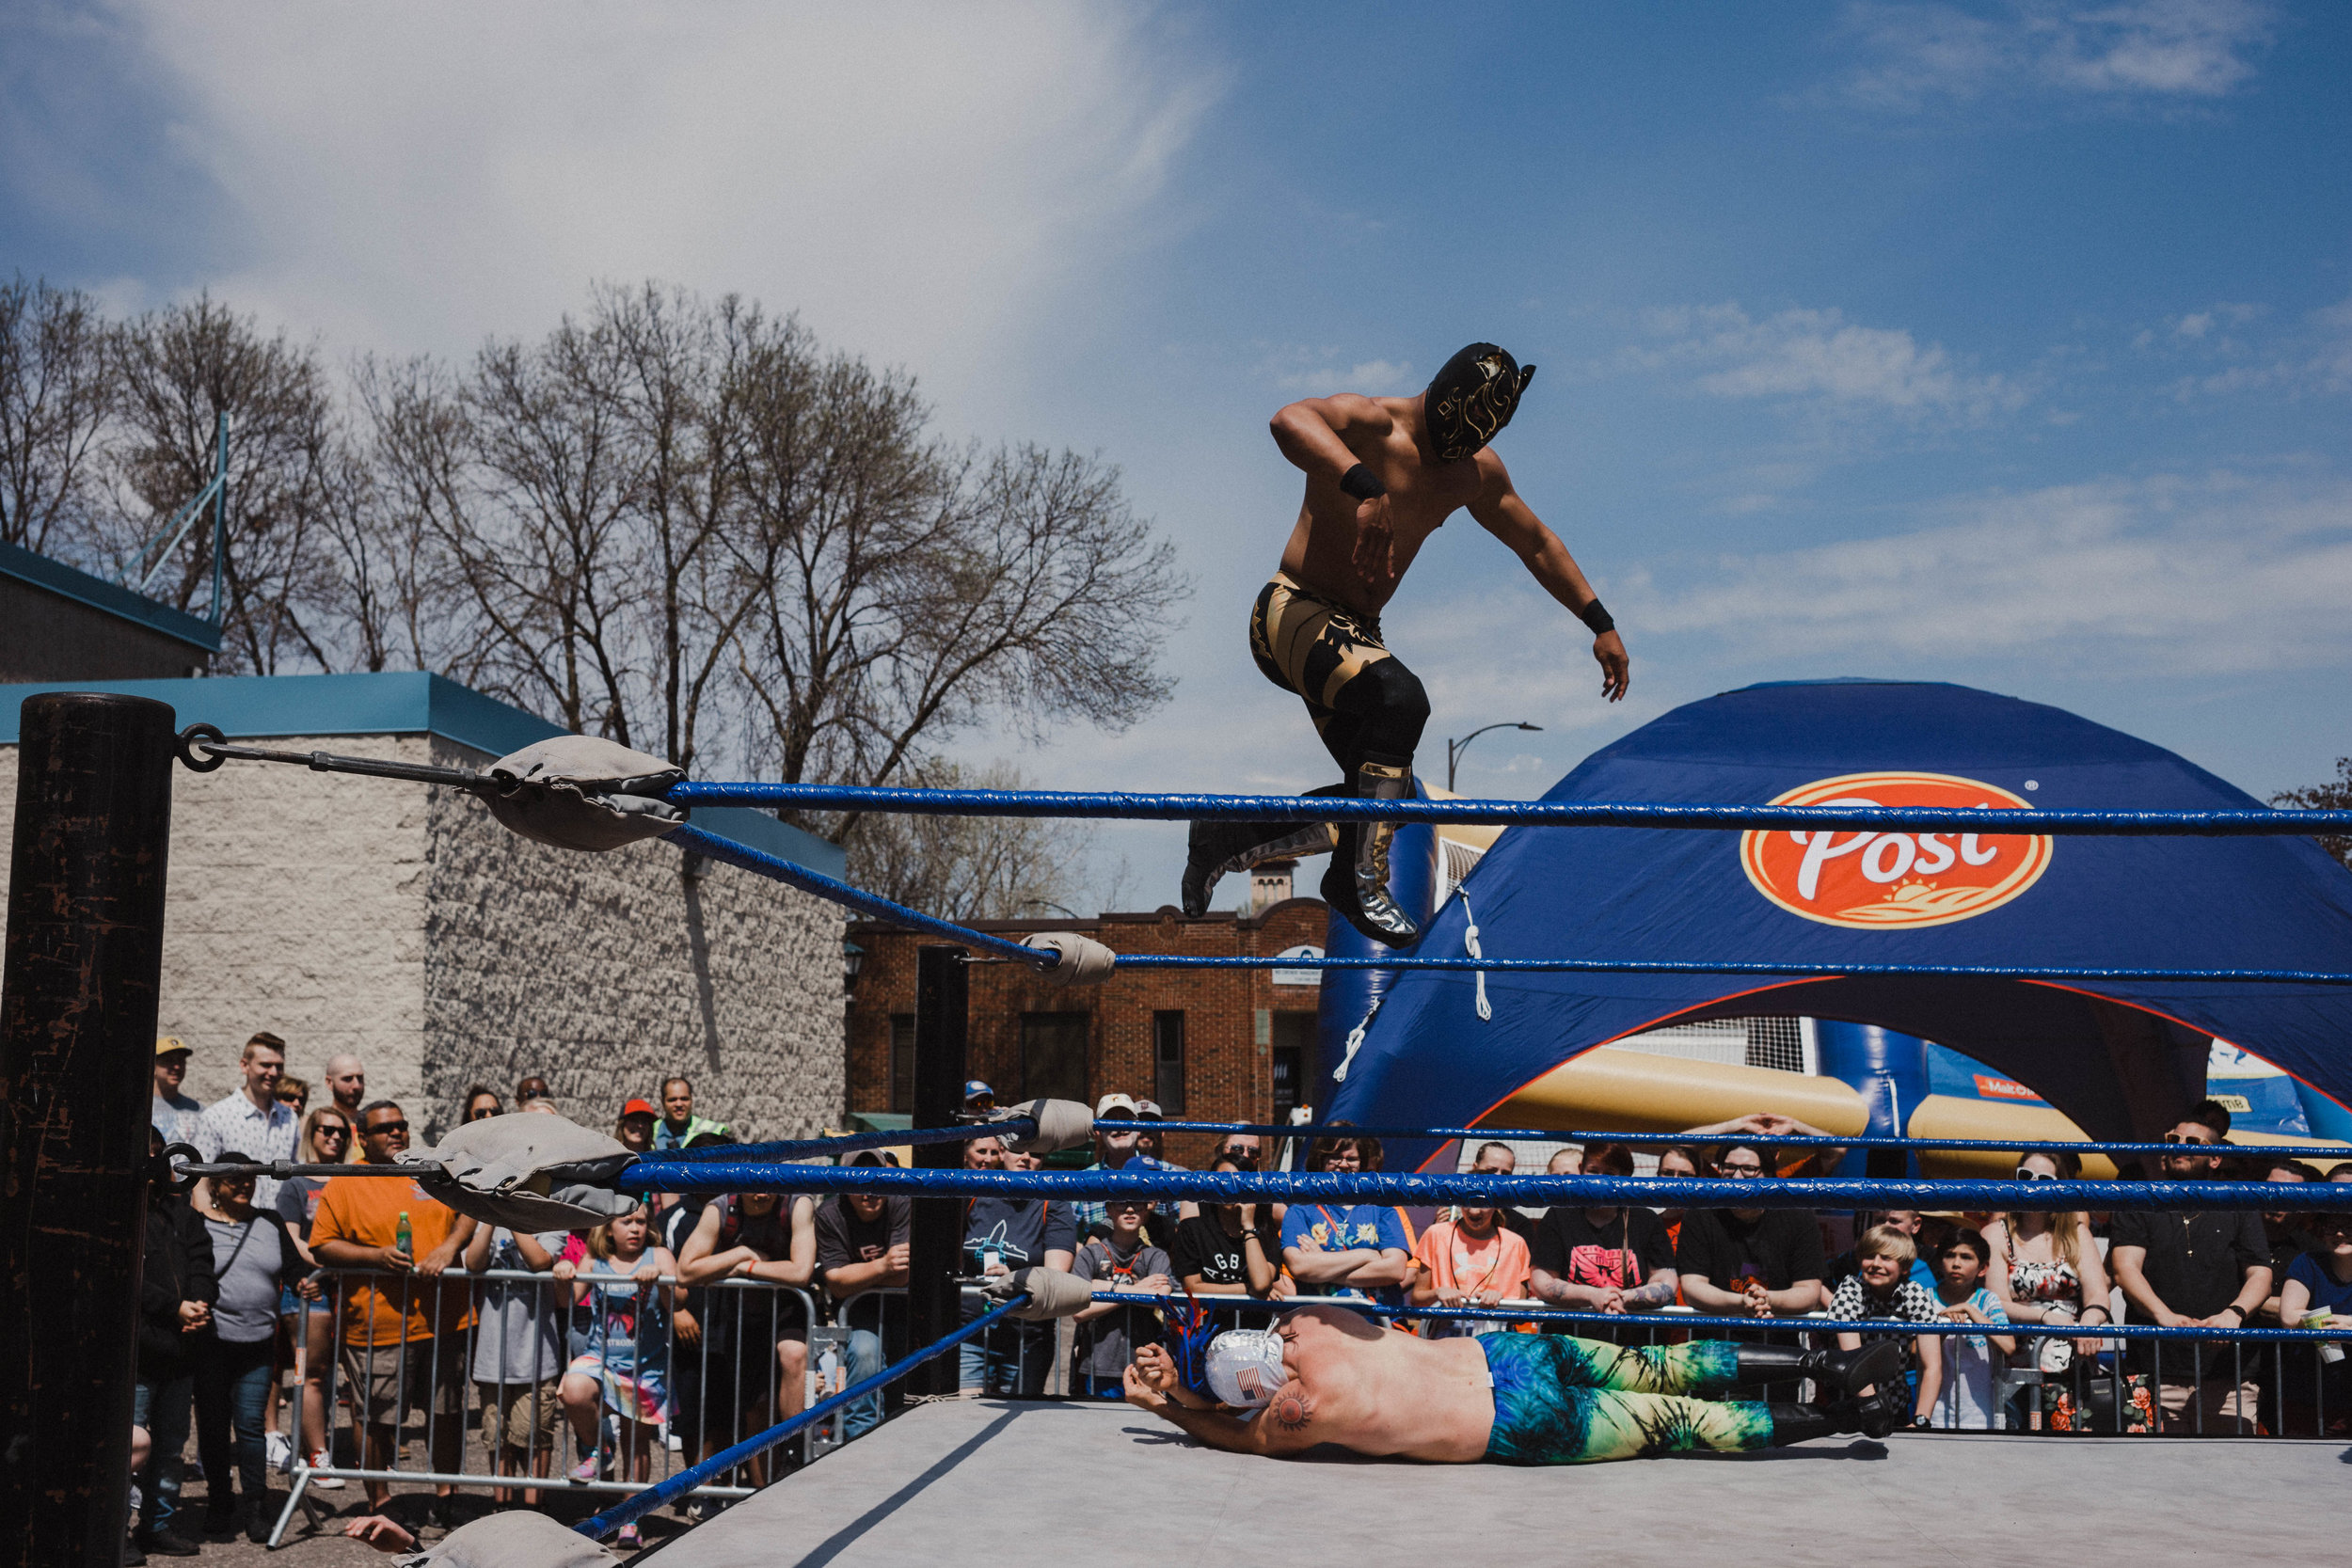 Lucha Libre is a new addition to the cellibration this year. - A free tag-team wrestling match was a fantastic addition to the celebration in Saint Paul this year. I have a feeling that in the coming years they are going to have to expand the viewing area to accomidate its popularity.